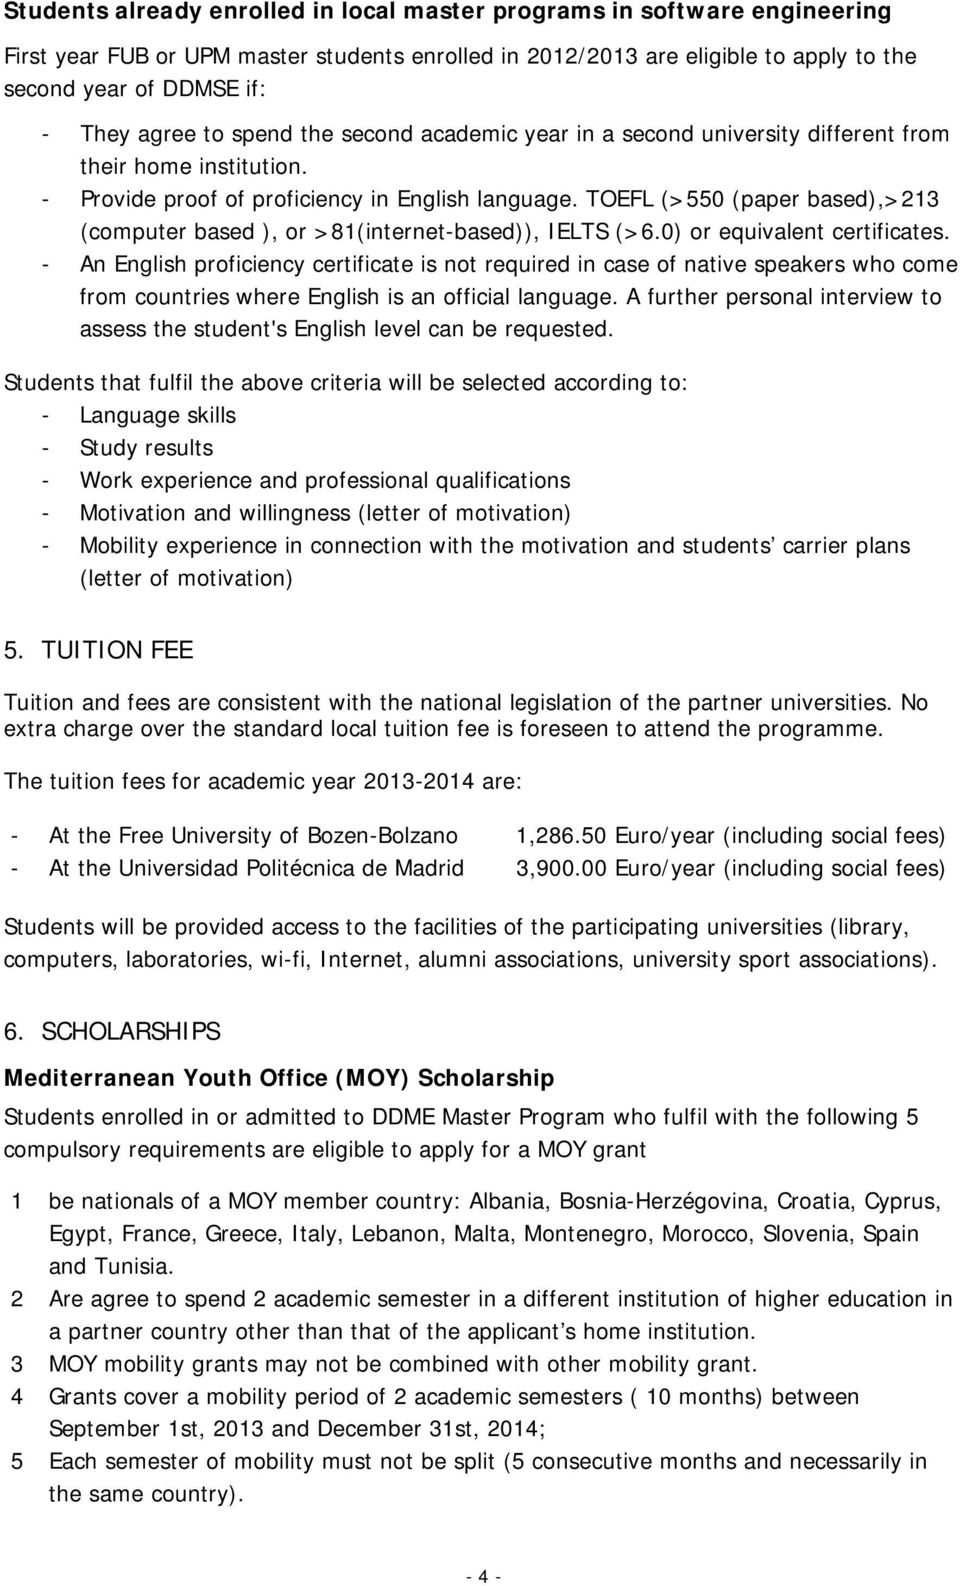 TOEFL (>550 (paper based),>213 (computer based ), or >81(internet-based)), IELTS (>6.0) or equivalent certificates.